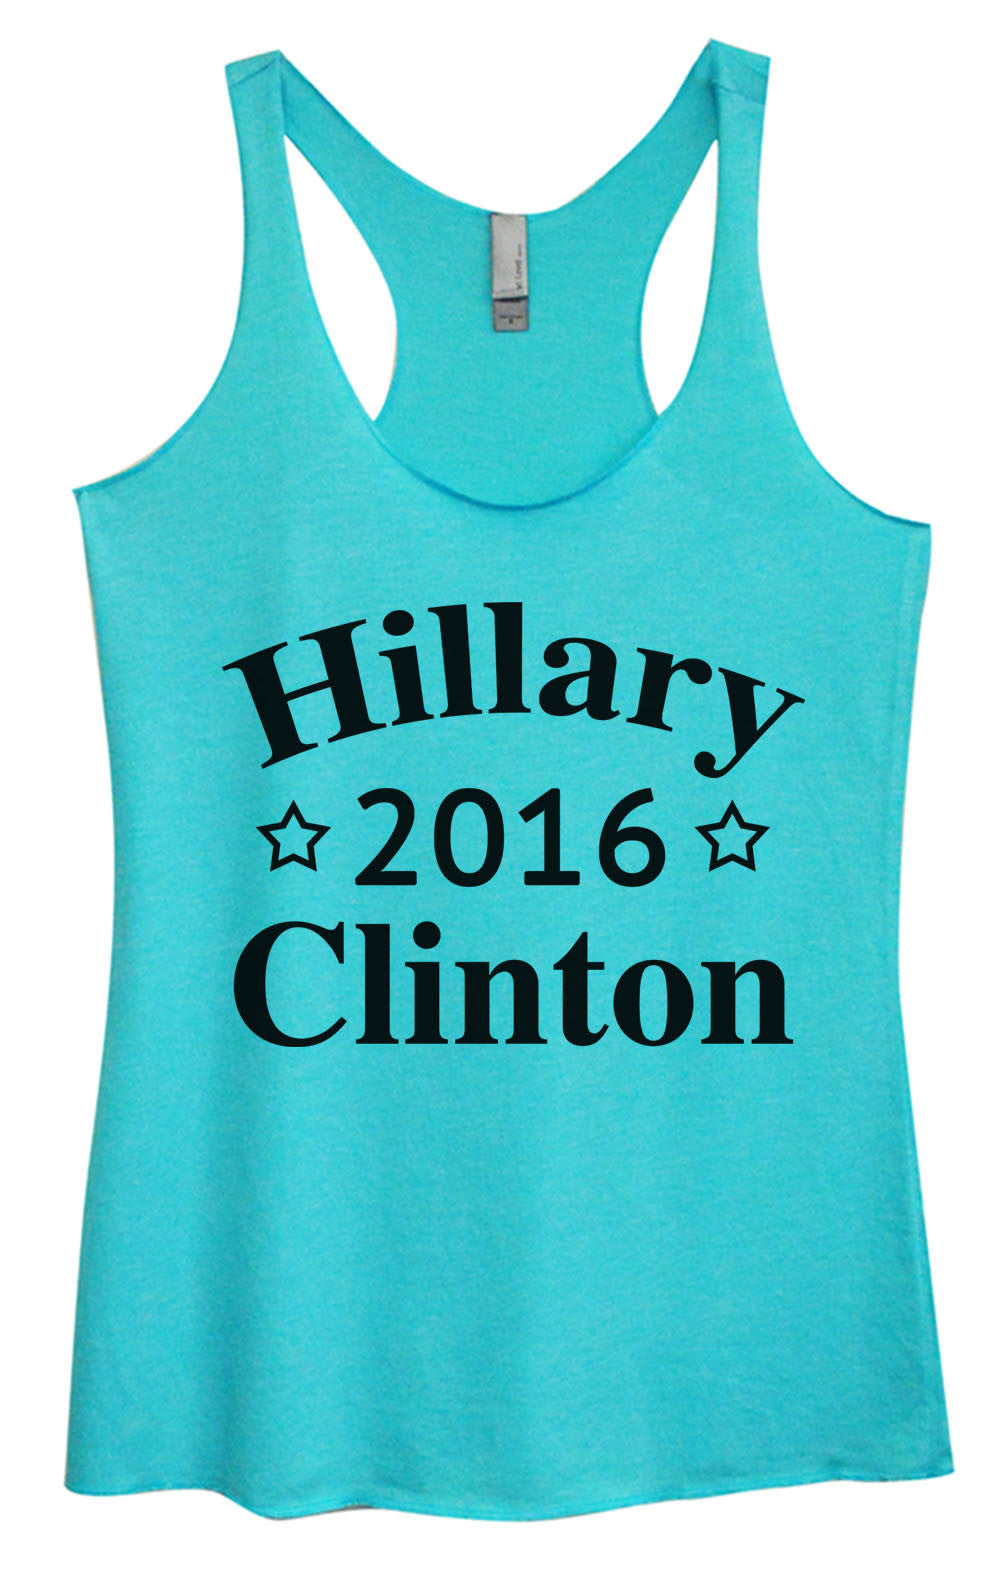 Womens Fashion Triblend Tank Top - Hillary 2016 Clinton - Tri-669 - Funny Shirts Tank Tops Burnouts and Triblends  - 1